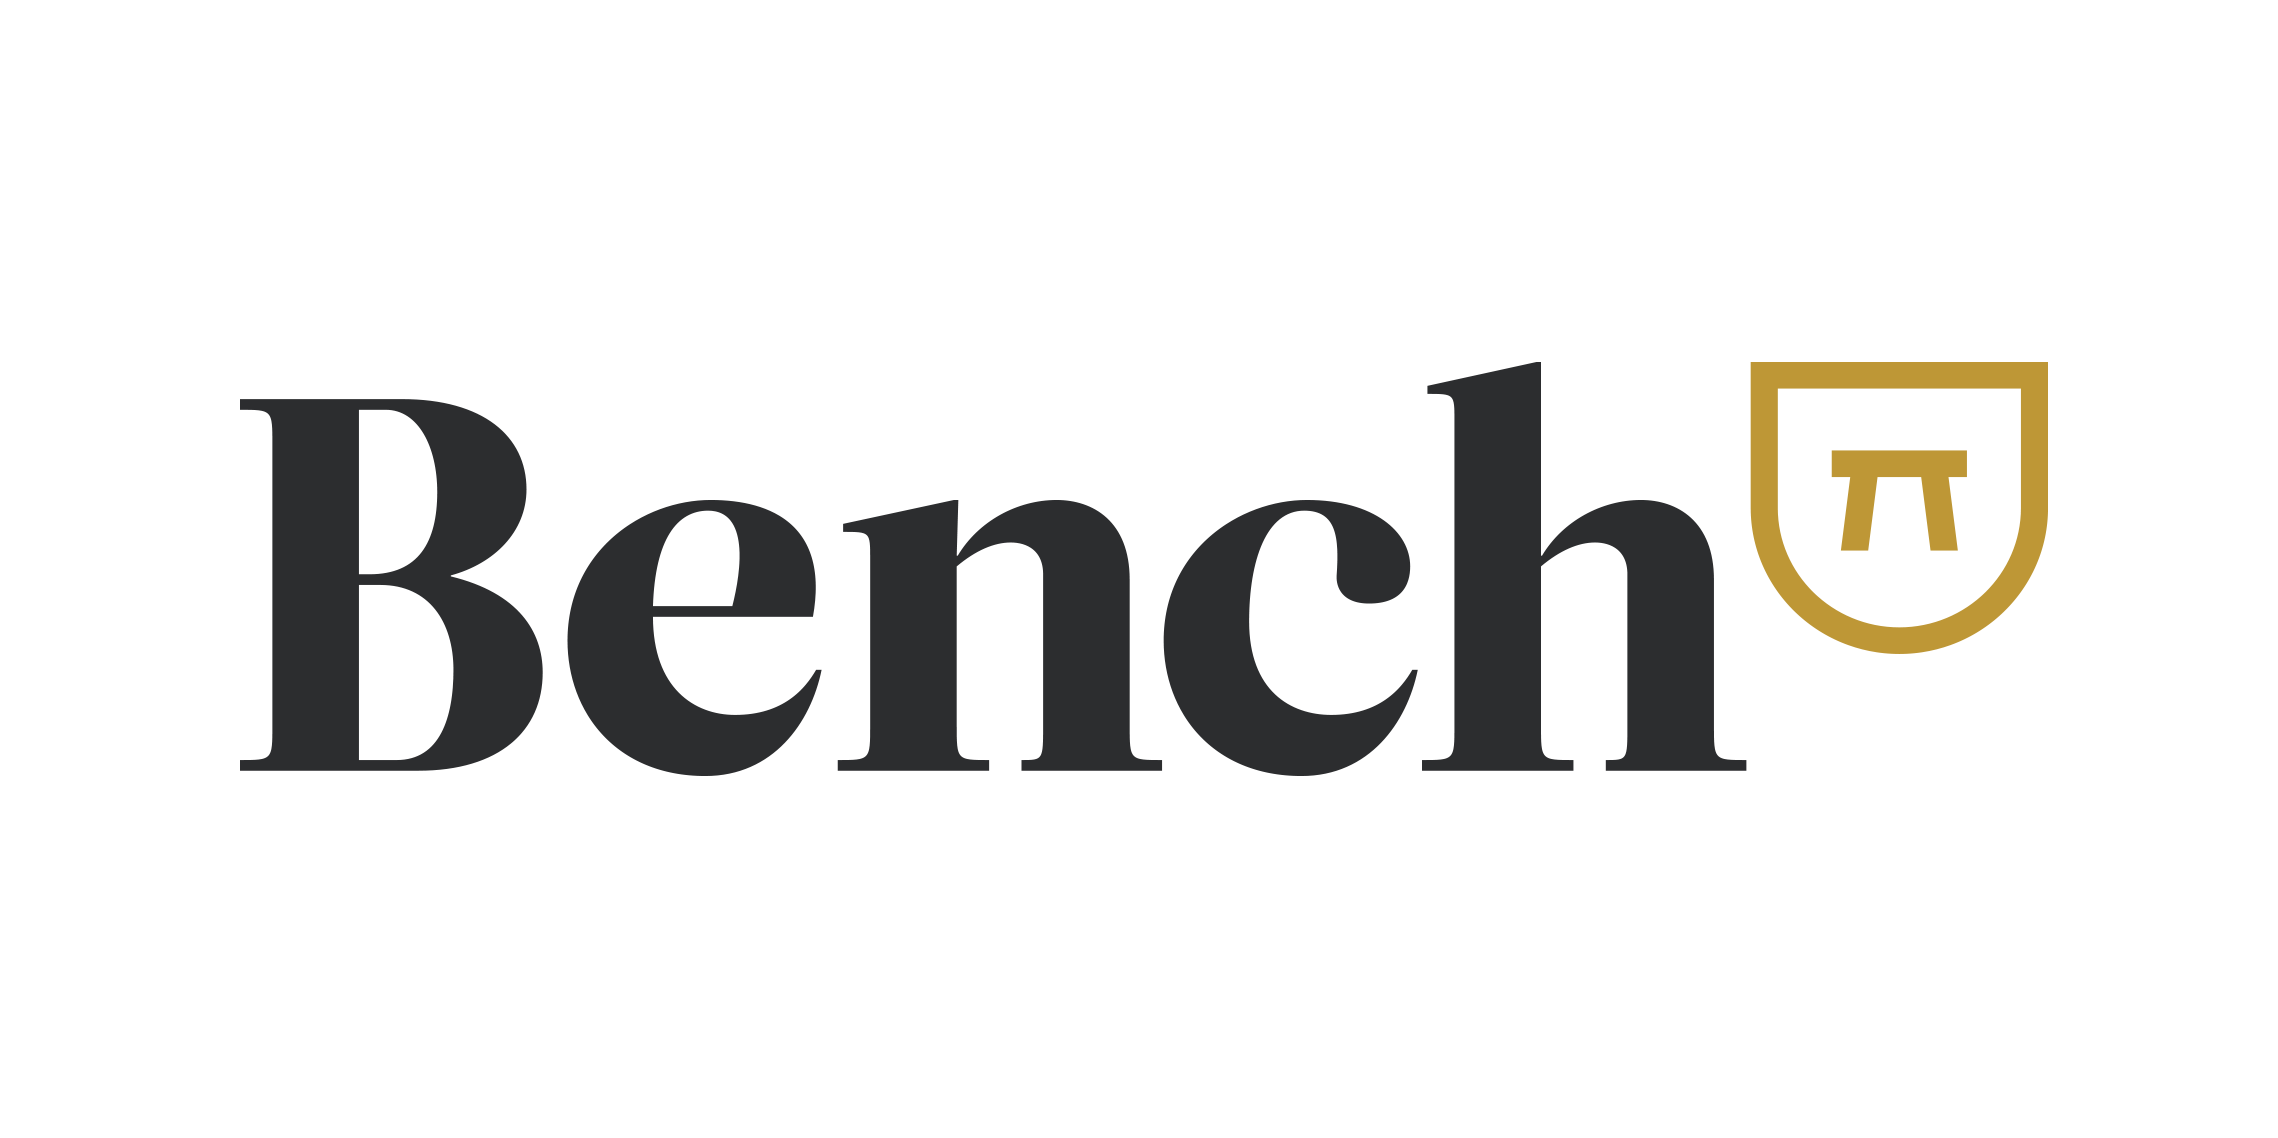 Témoignage de Bench Accounting